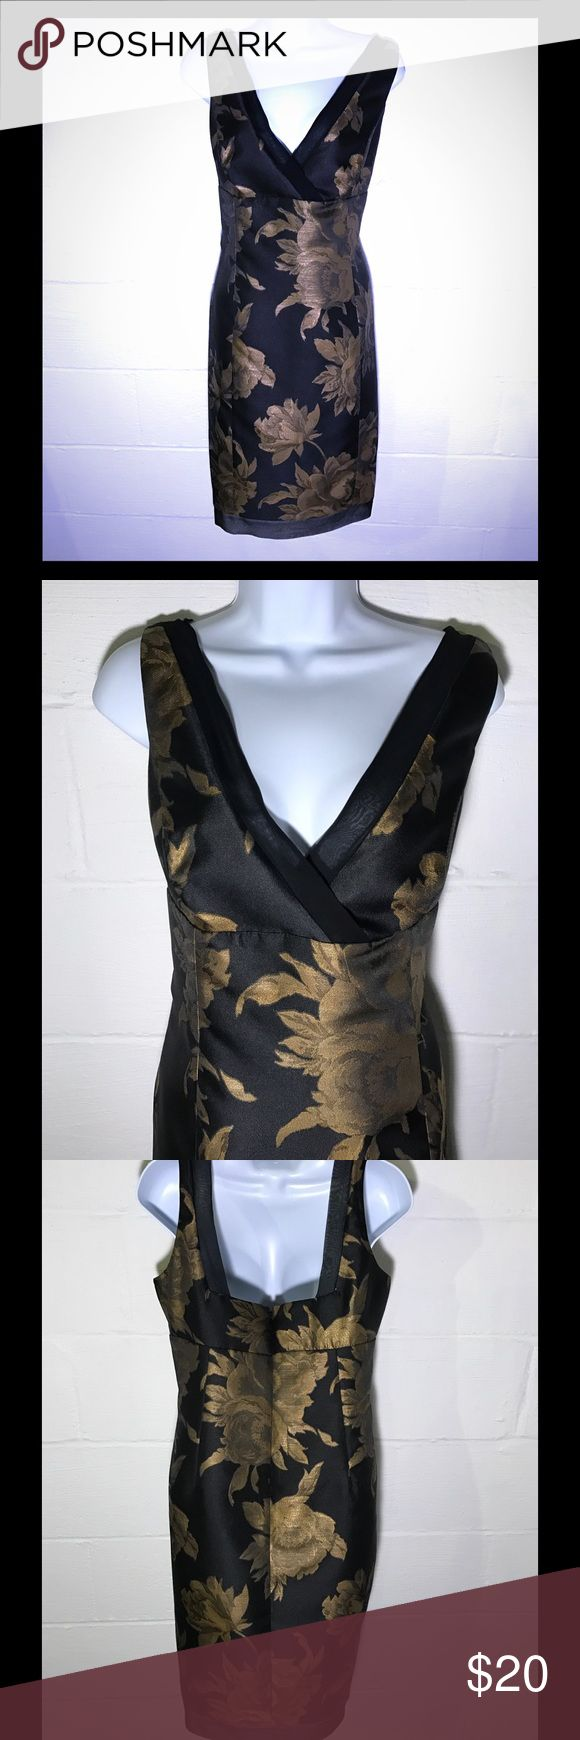 Sleeveless dress Black dress with gold floral. Work to cocktail party - NWOT Jones New York Dresses Midi